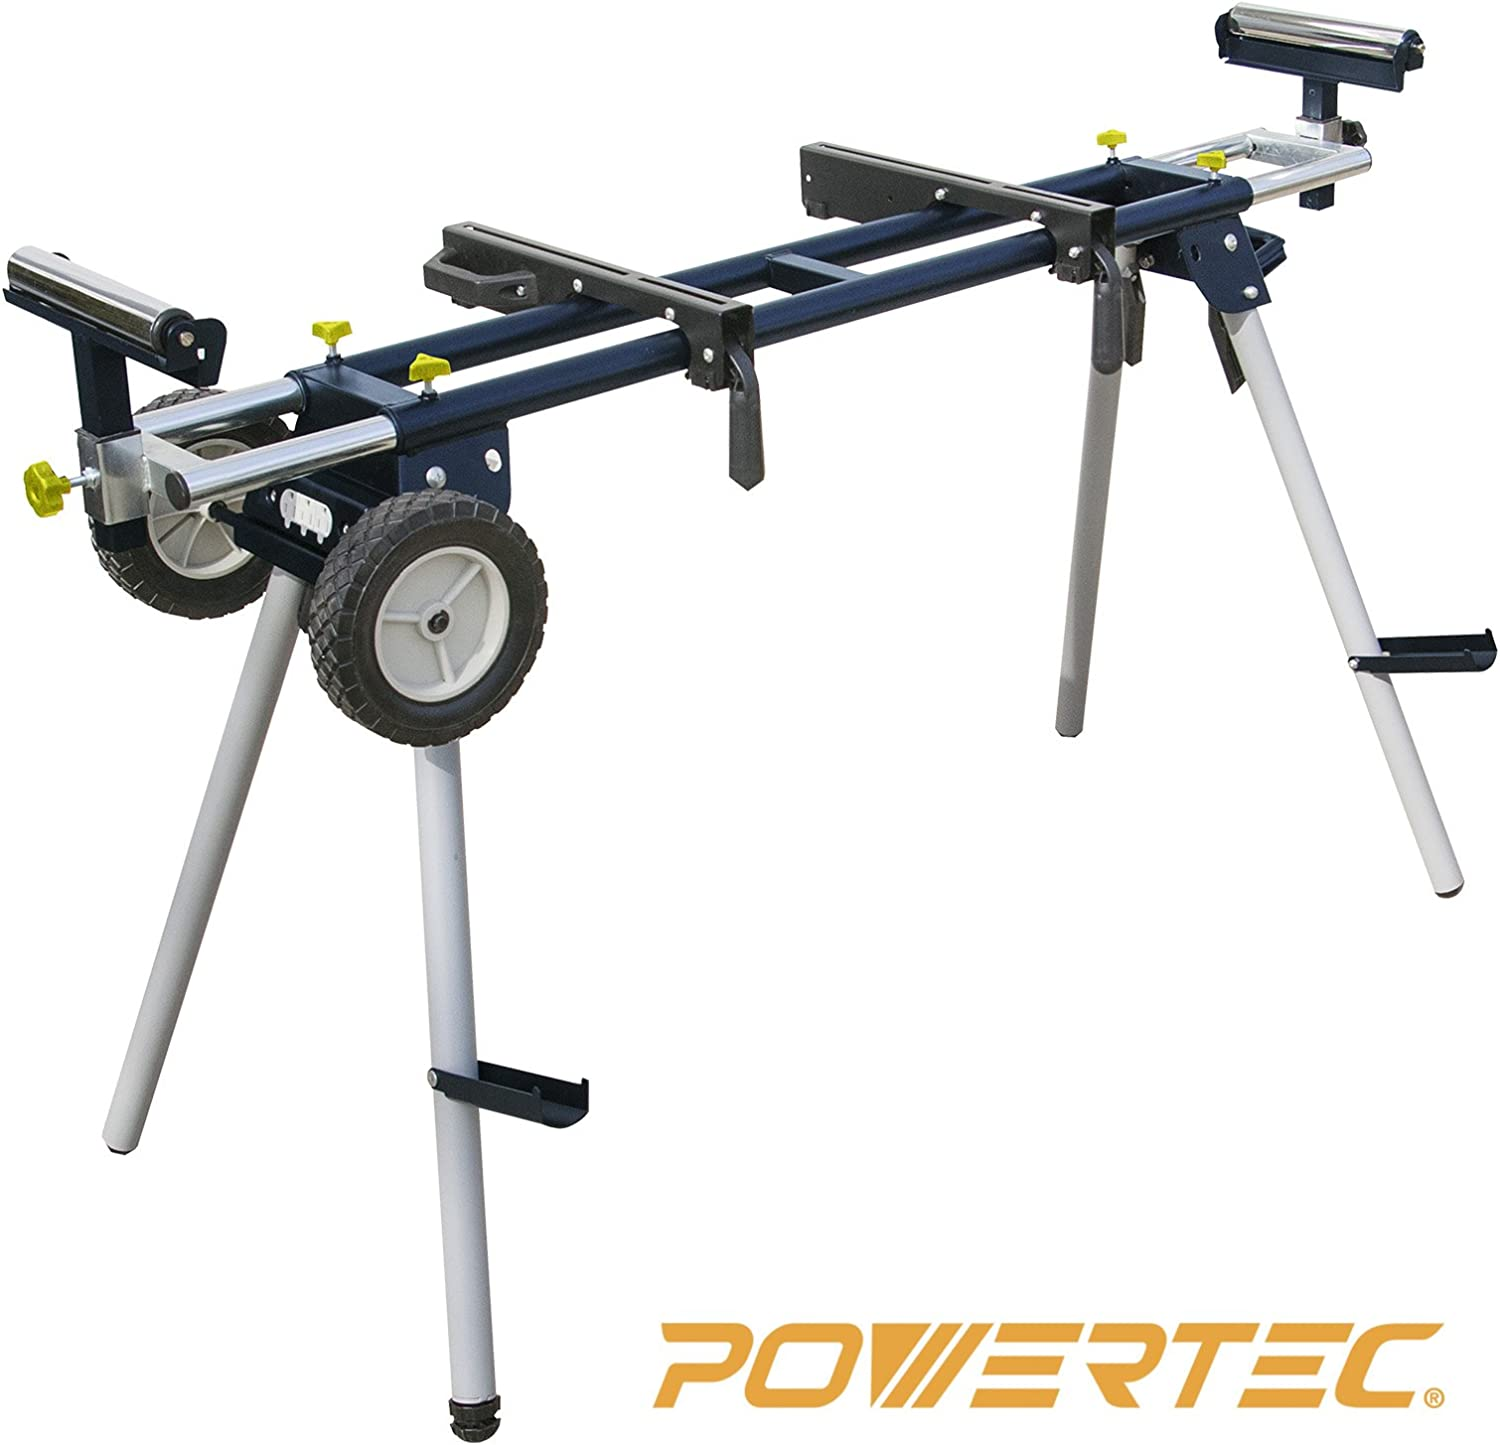 Best miter saw stand: POWERTEC MT4000 Deluxe Portable Miter Saw Stand